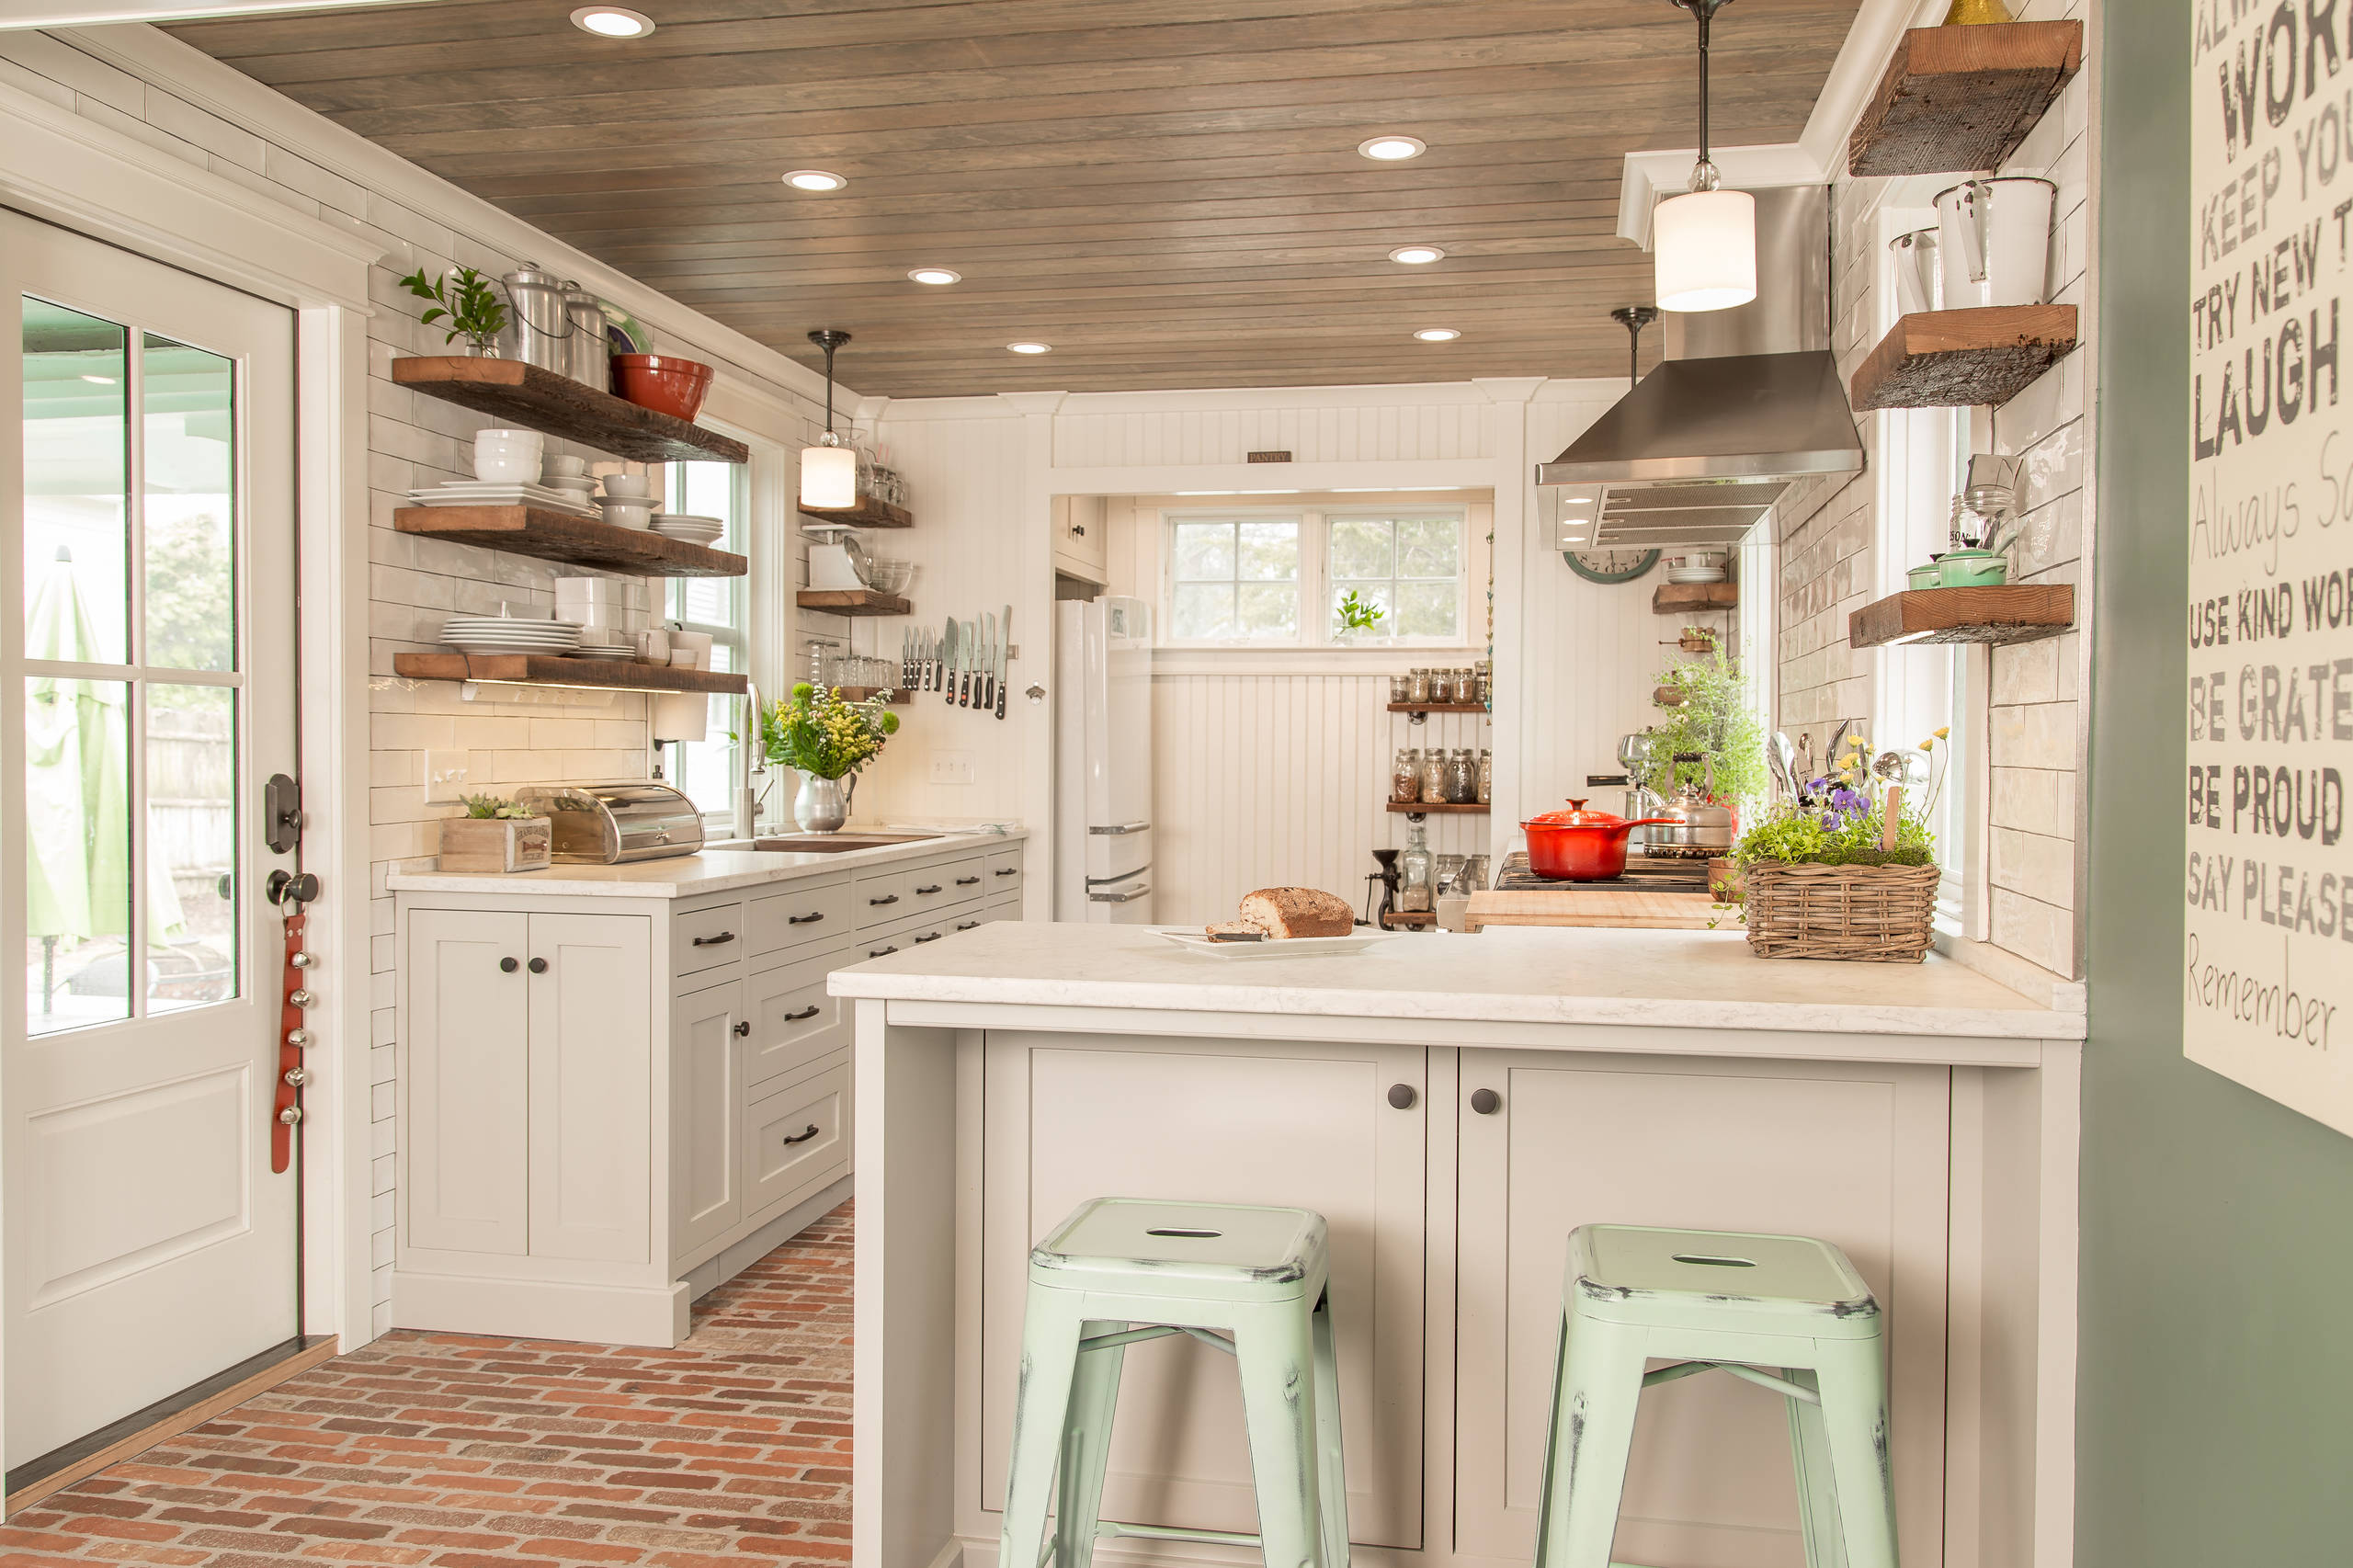 75 Beautiful Brick Floor Kitchen Pictures Ideas January 2021 Houzz